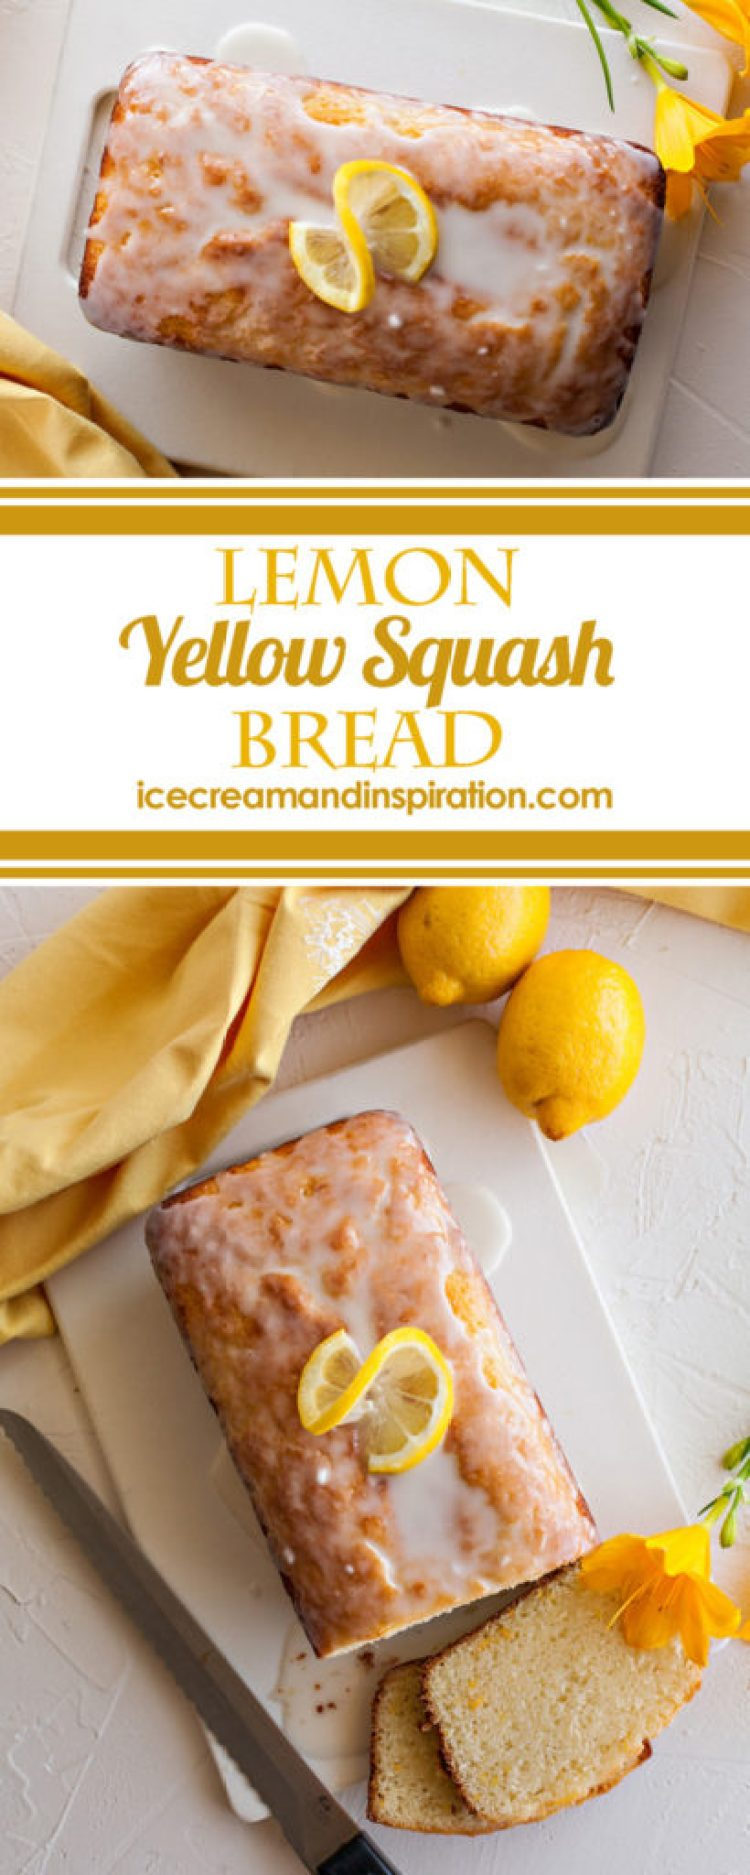 Super moist Lemon Yellow Squash Bread is made with fresh lemon juice and zest and healthy yellow squash from your garden! The perfect way to sneak veggies into dessert!